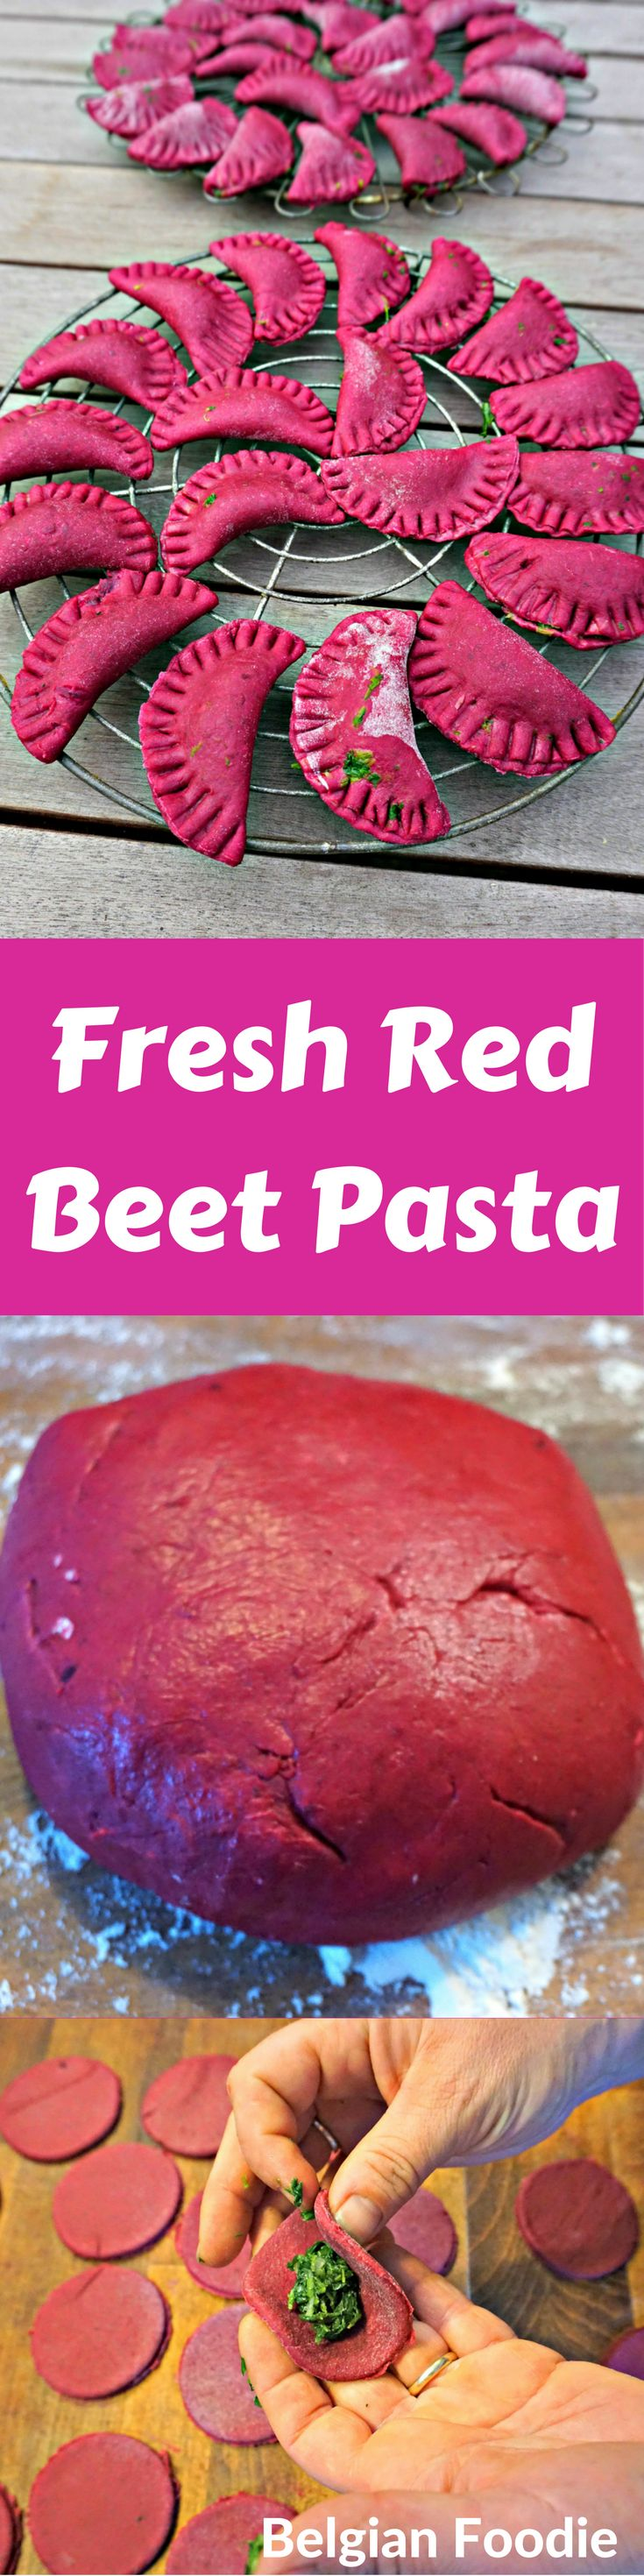 Homemade Fresh Red Beet Pasta for a tasty healthy meal fun to prepare with kids!